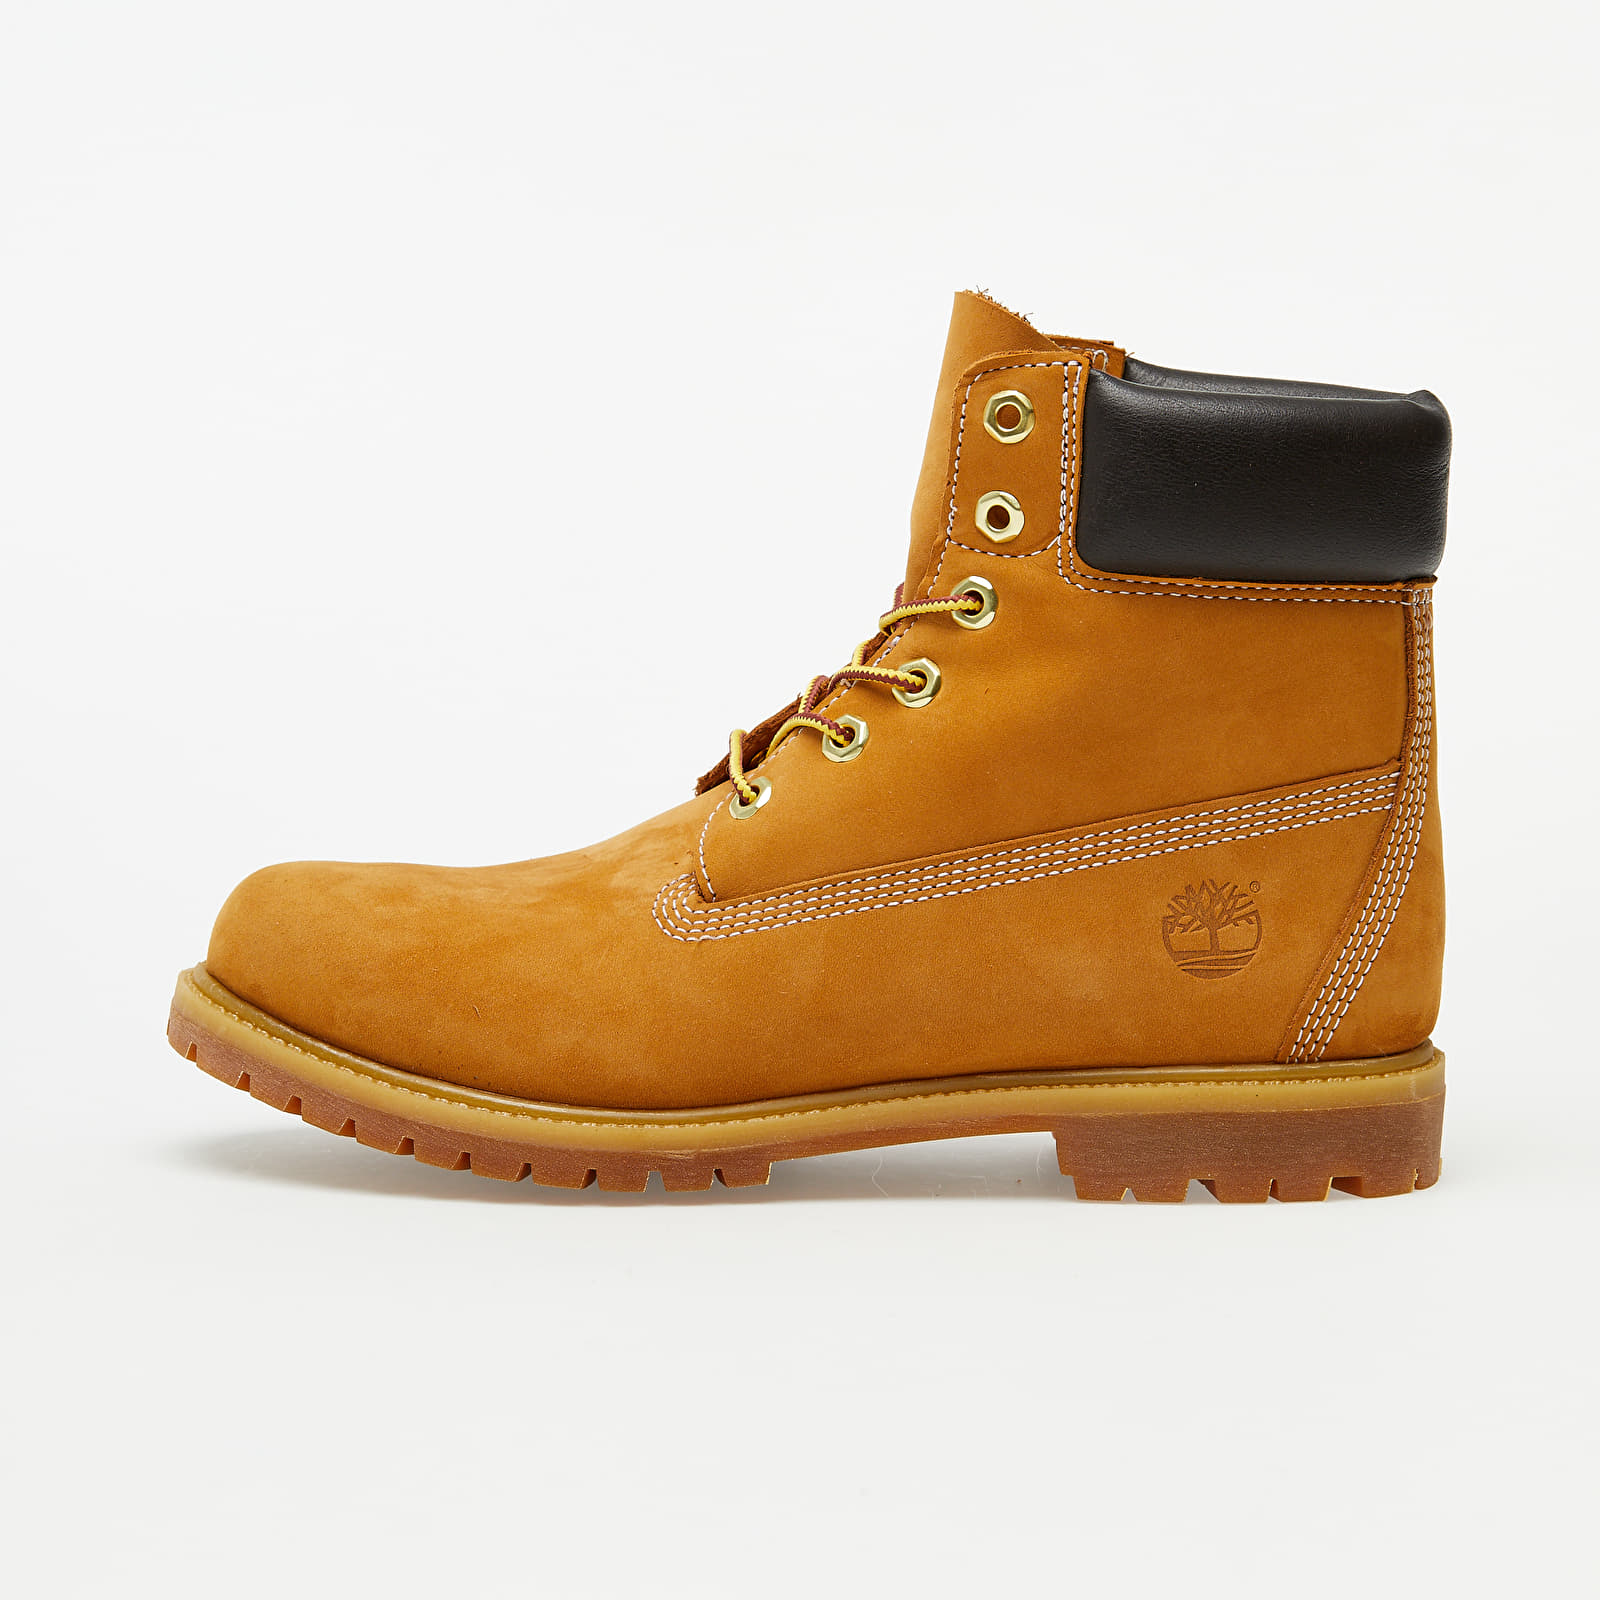 Chaussures et baskets femme Timberland Premium 6 In Waterproof Boot Wheat Nubuck